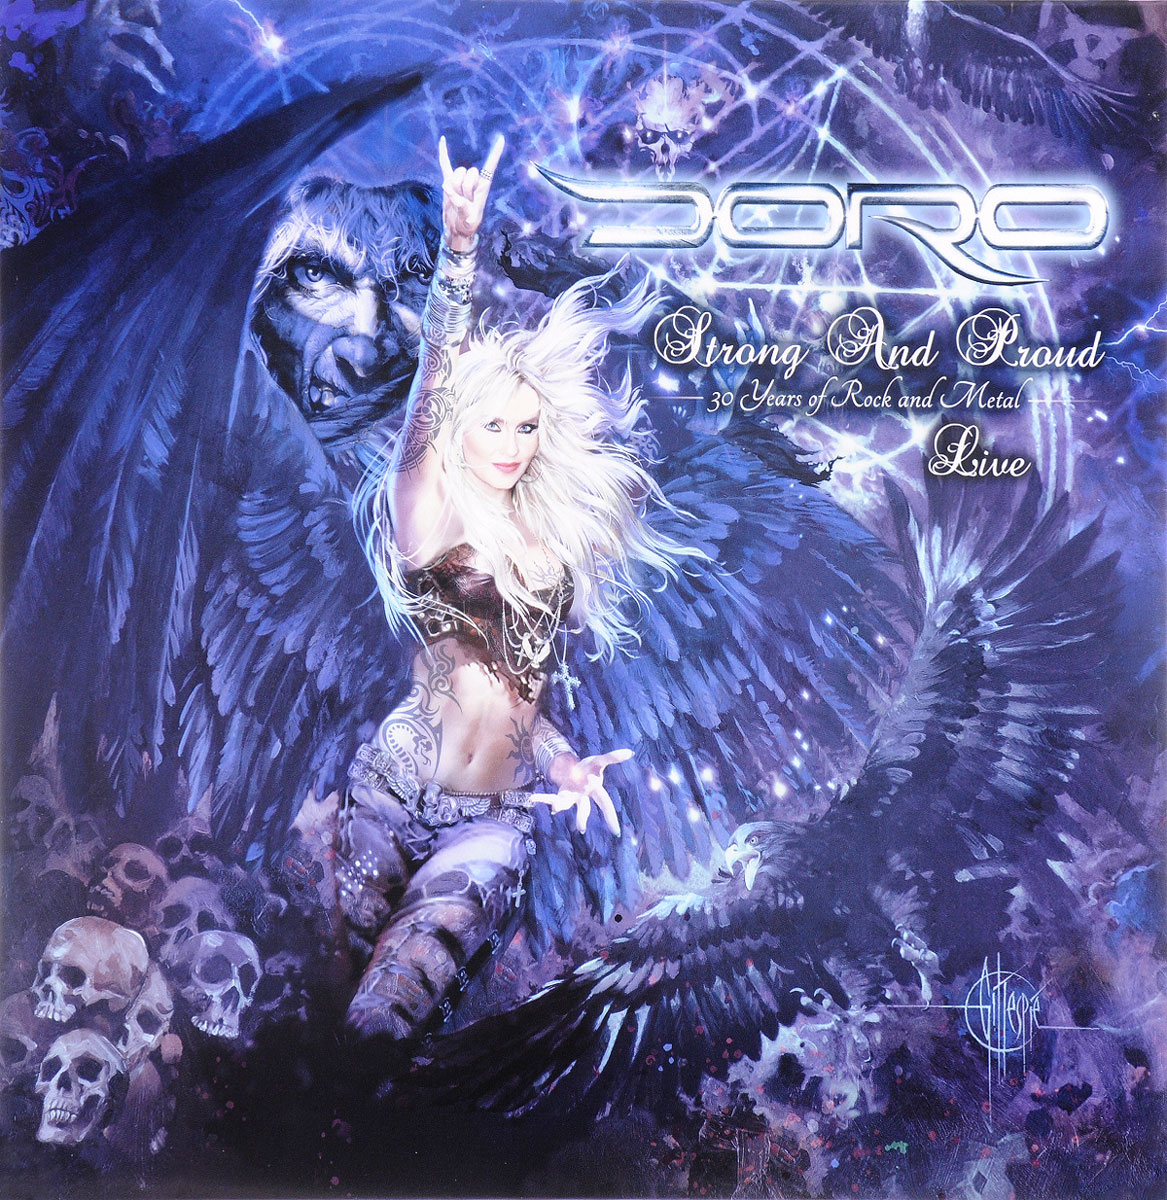 Doro Doro. Strong And Proud. 30 Years Of Rock And Metal. Live (2 LP) doro doro fur immer 2 lp picture disc